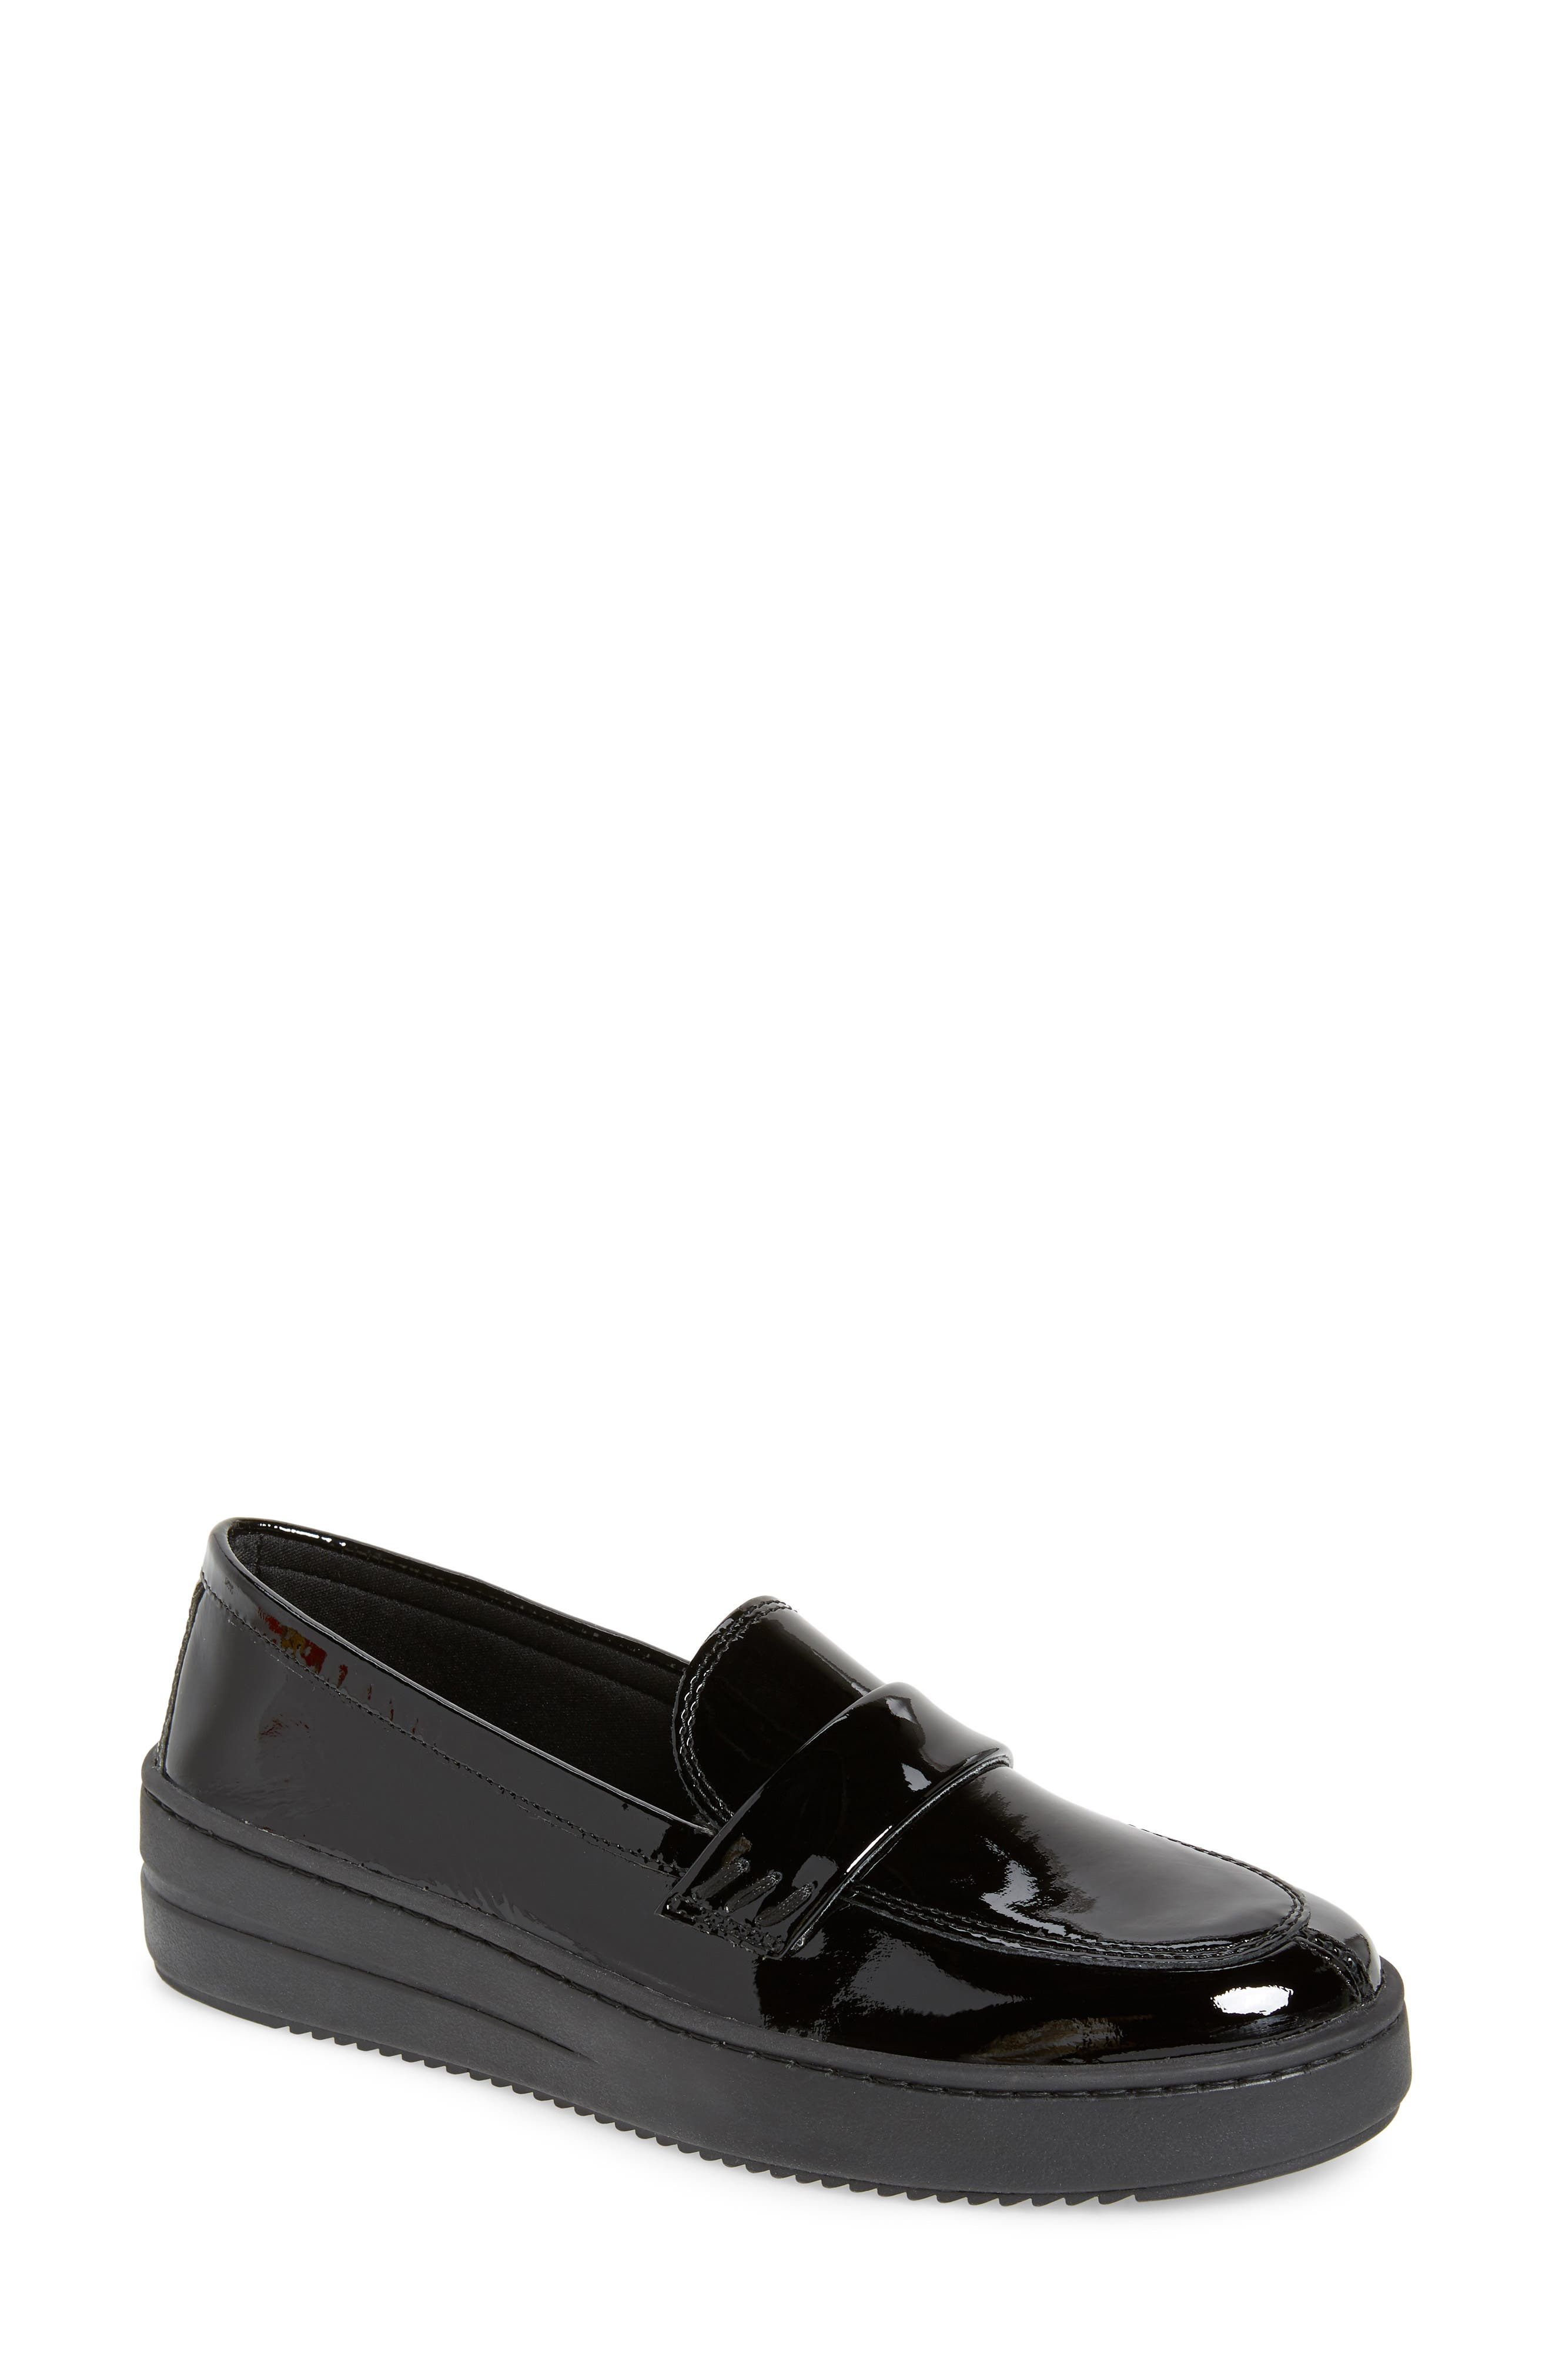 No Loaf N Loafer,                             Main thumbnail 1, color,                             BLACK PATENT LEATHER